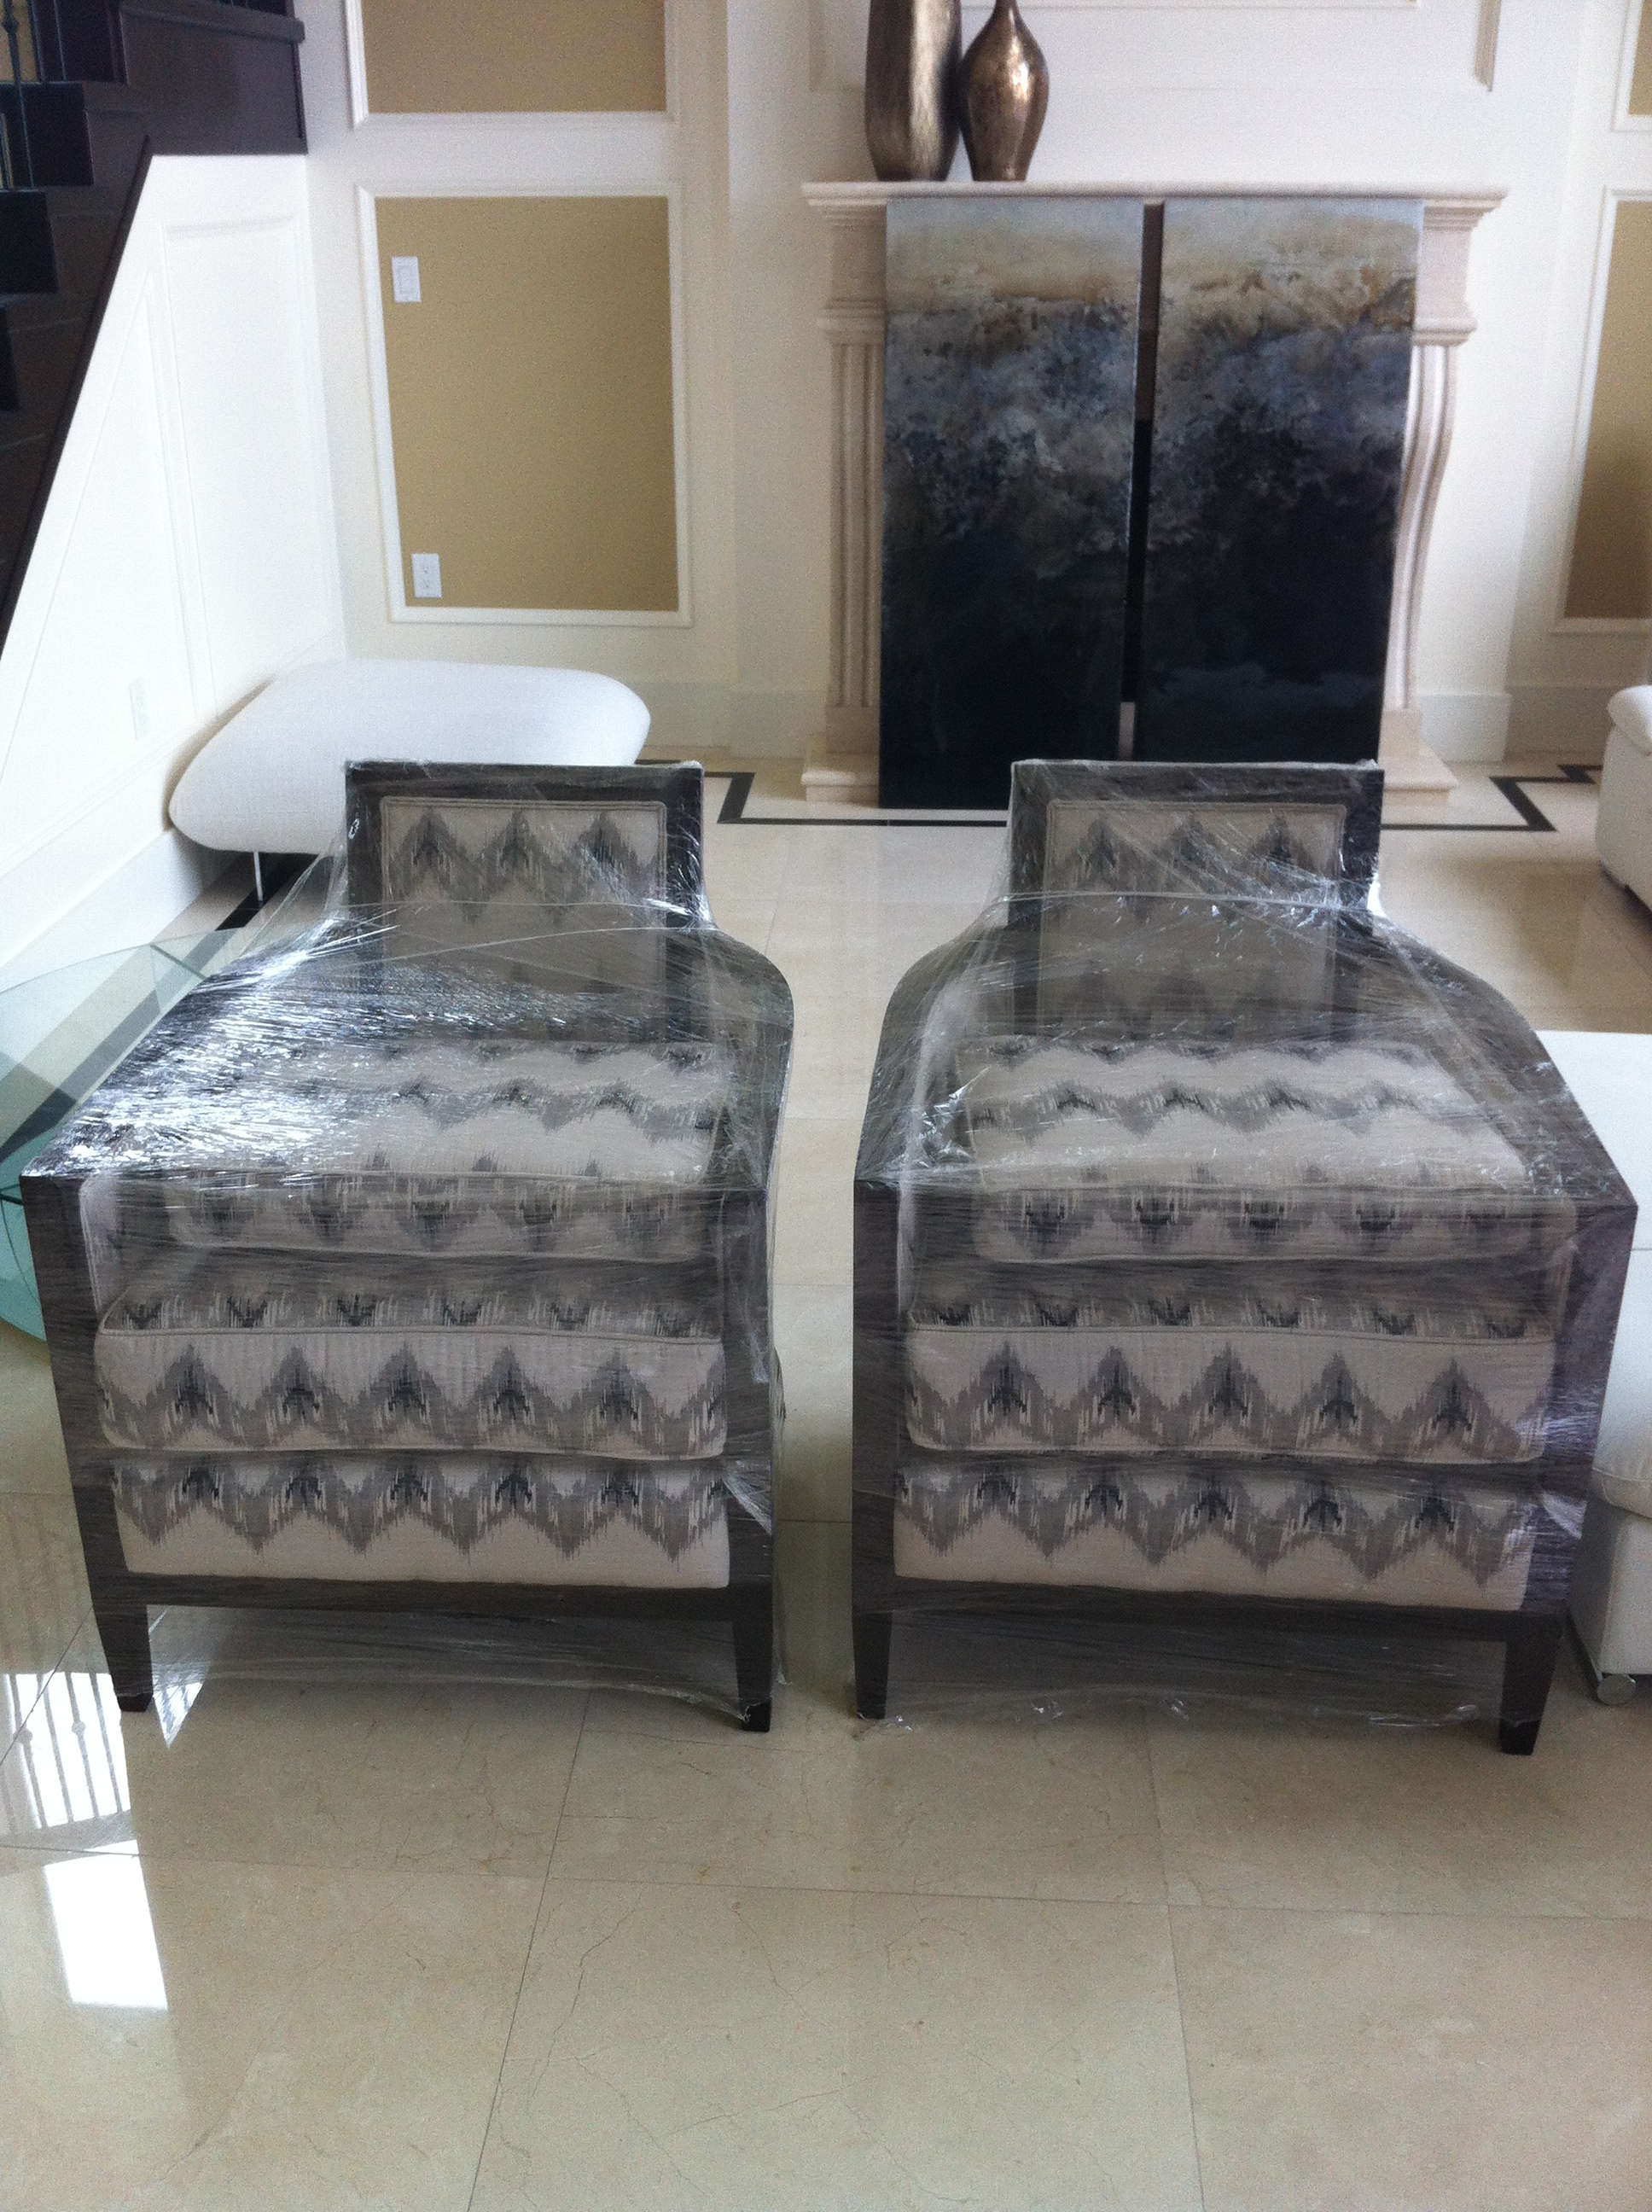 sofa what full pick large of picks with do cost used to who furniture cleaning up removal old size